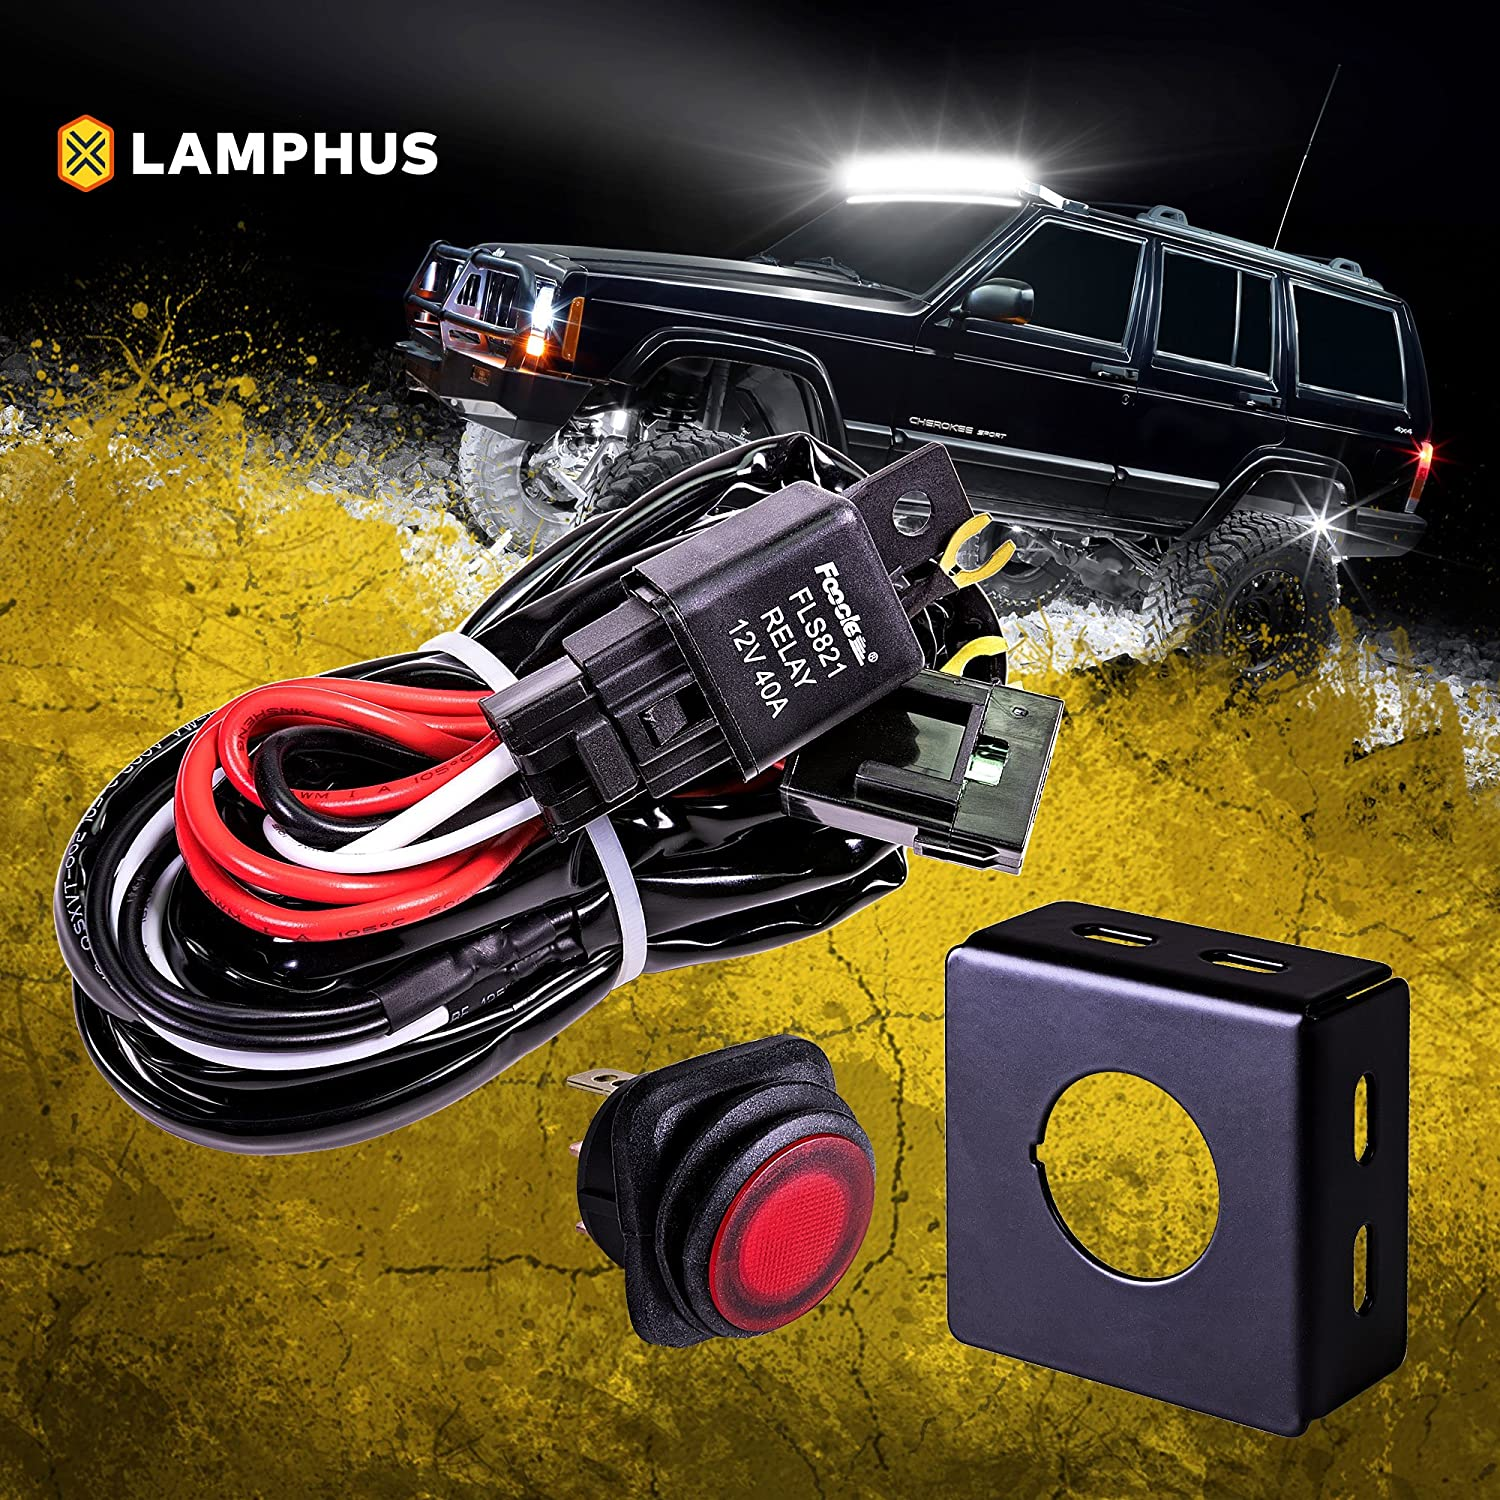 Lamphus 13 Off Road Atv Jeep Led Light Bar Wiring Switch Mistakes Harness Kit Waterproof Mounting Bracket 30a Fuse 40a Relay Usa Warranty